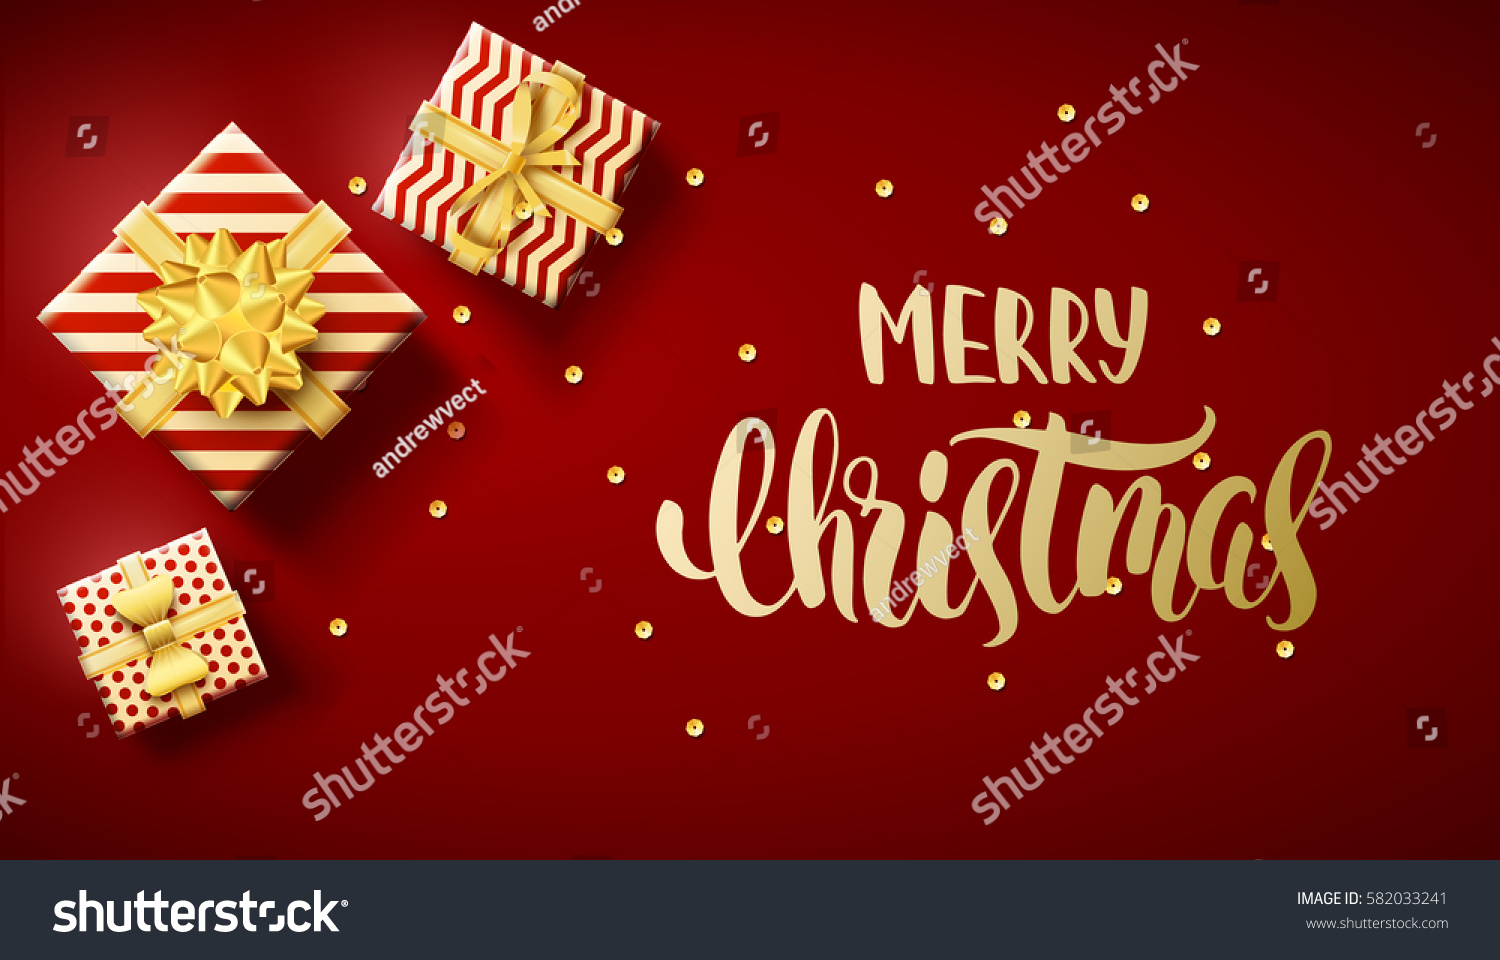 Merry Christmas 2018 Top View Gold Stock Vector 582033241 ...